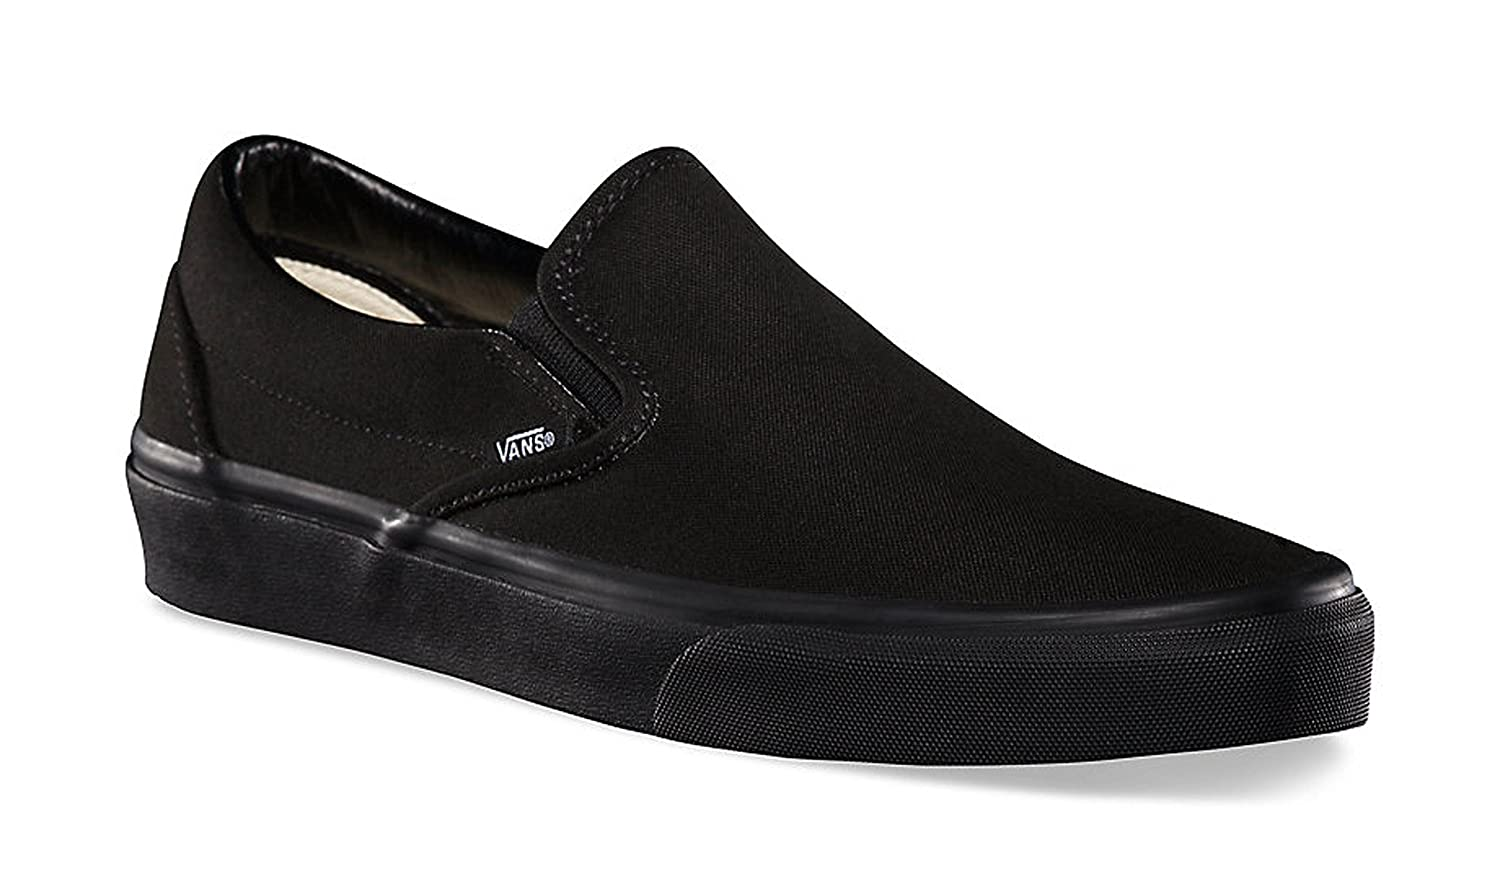 Vans Unisex Classic Slip-On Black/Black VN000EYEBKA B007JWW77G mens 9.5 / womens 11|black/black